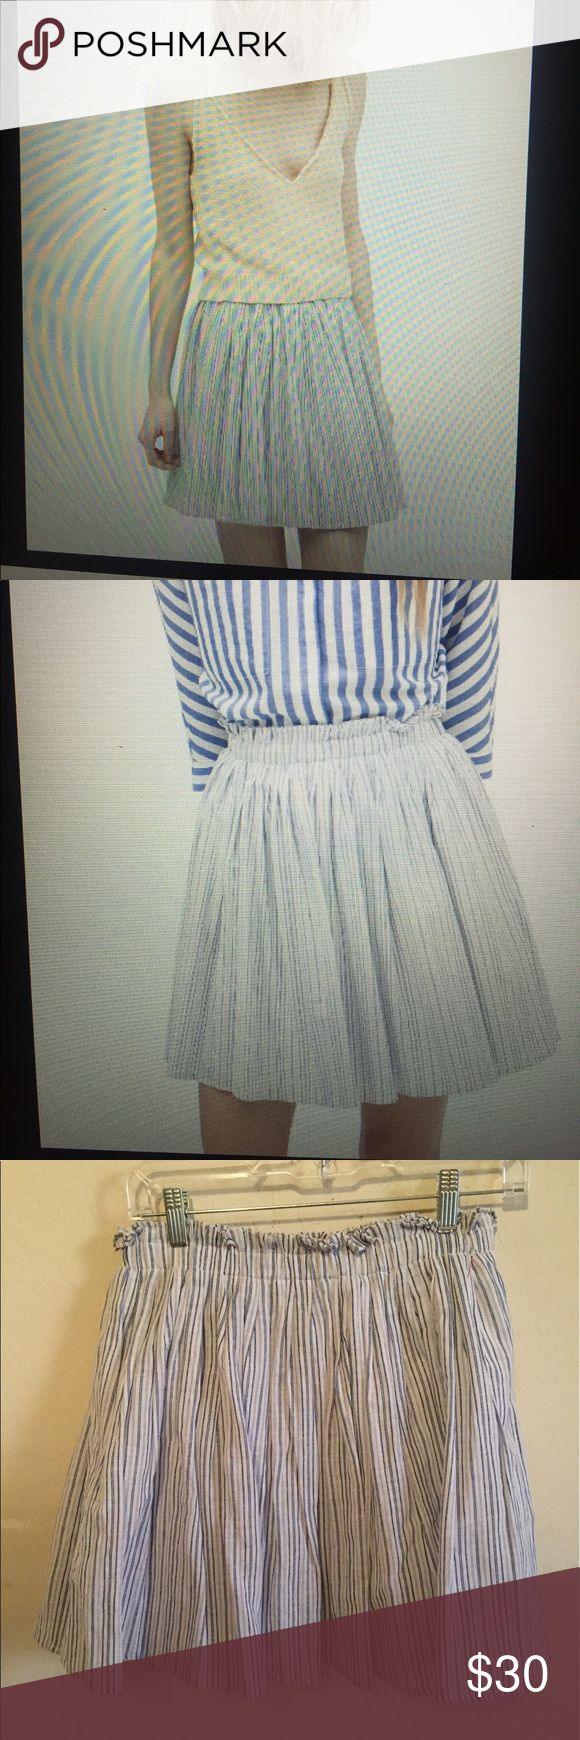 Zara stripped short skirt Snall Women's blue and white shirt skirt. Perfect for summer. Elastic waste, fully lined. Size small excellent condition. Zara Skirts Mini